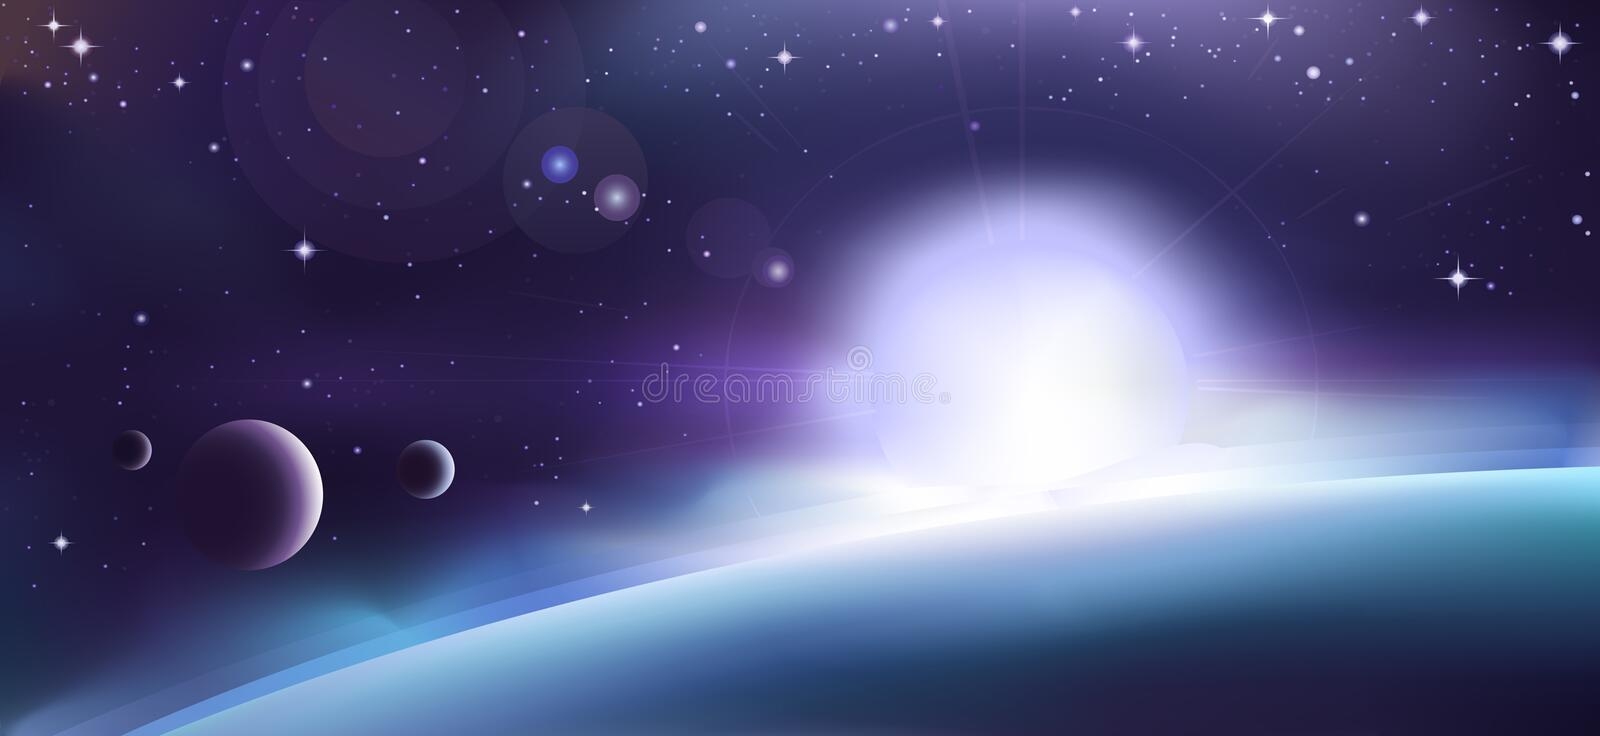 Aurora over a planet royalty free illustration